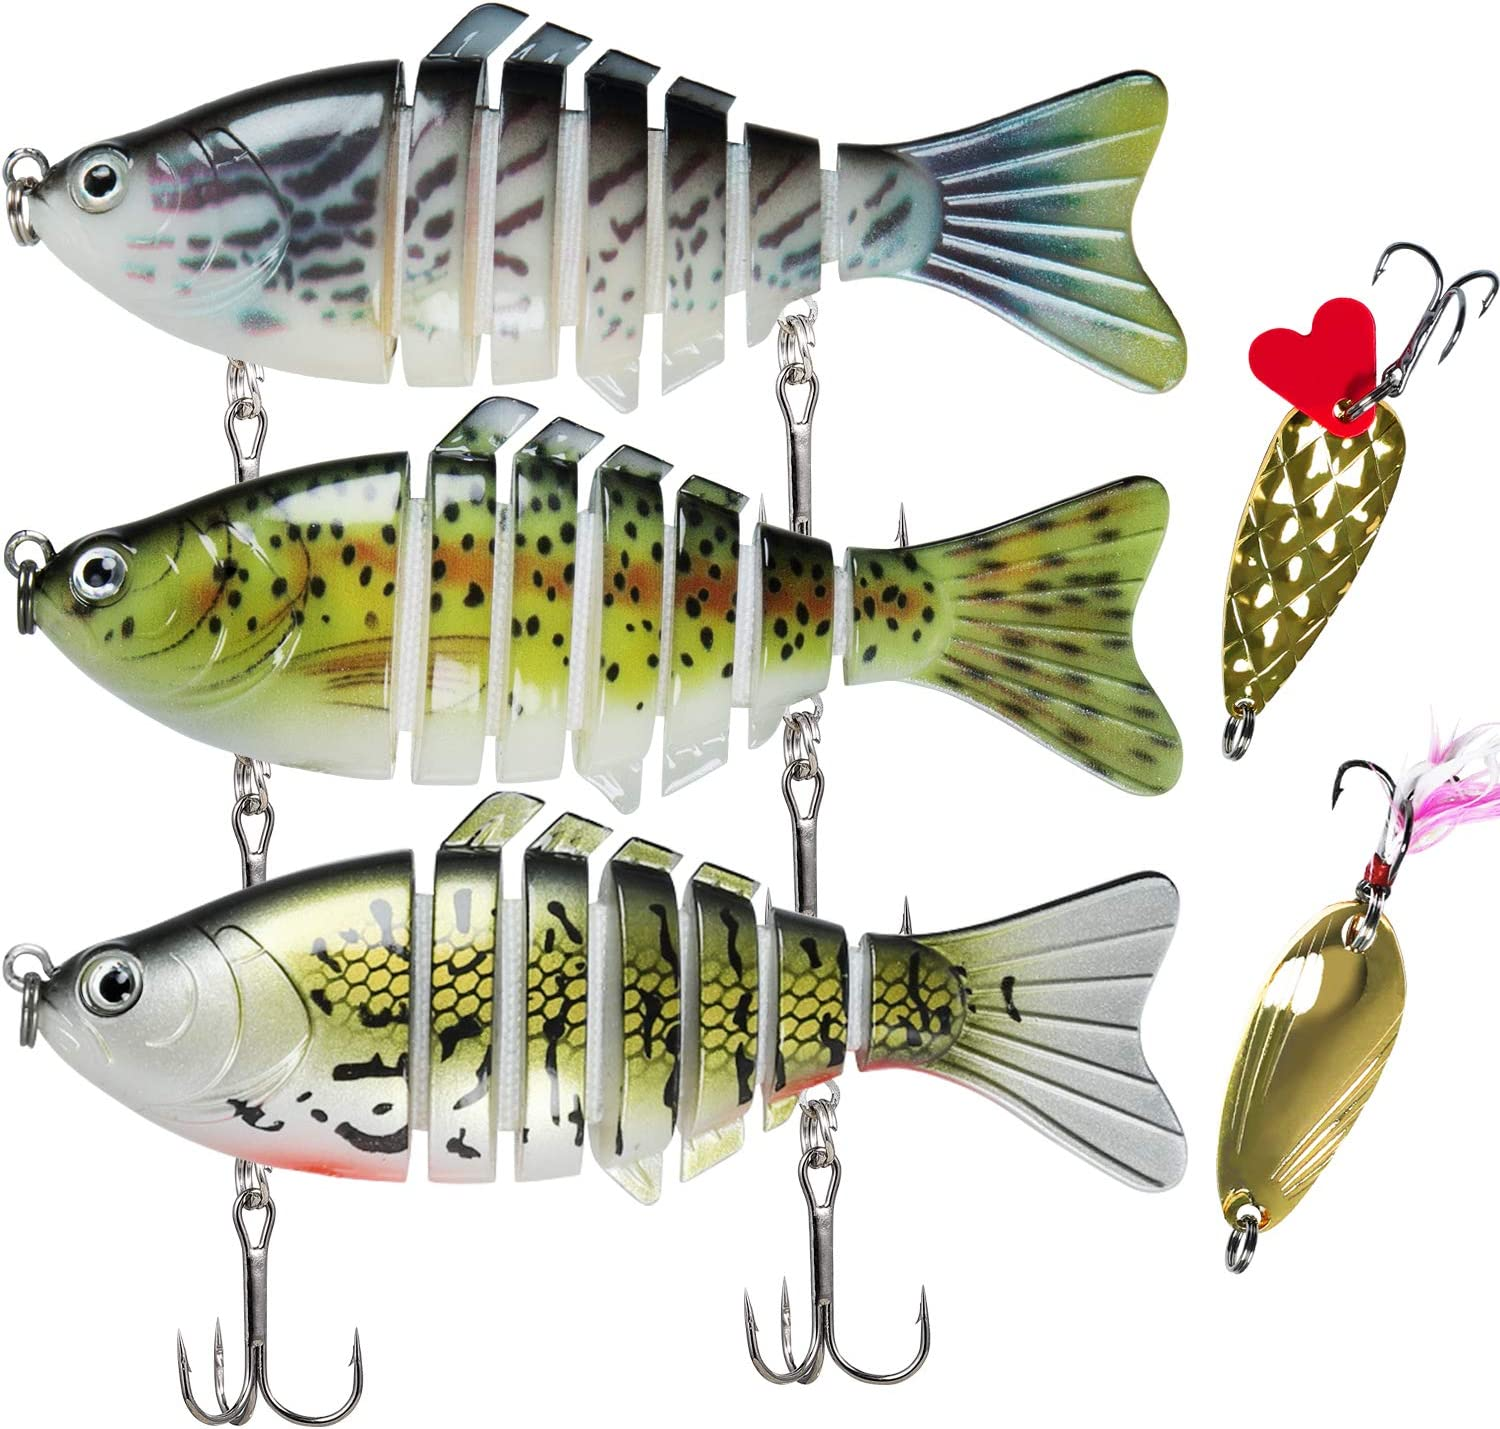 Fishing Baits Kit Multi-Section Fishing Bait 5 Pcs Fishing Lures for Bass and Trout Fishing Lures for Freshwater and Saltwater Swimbaits Lures Simulation Bait